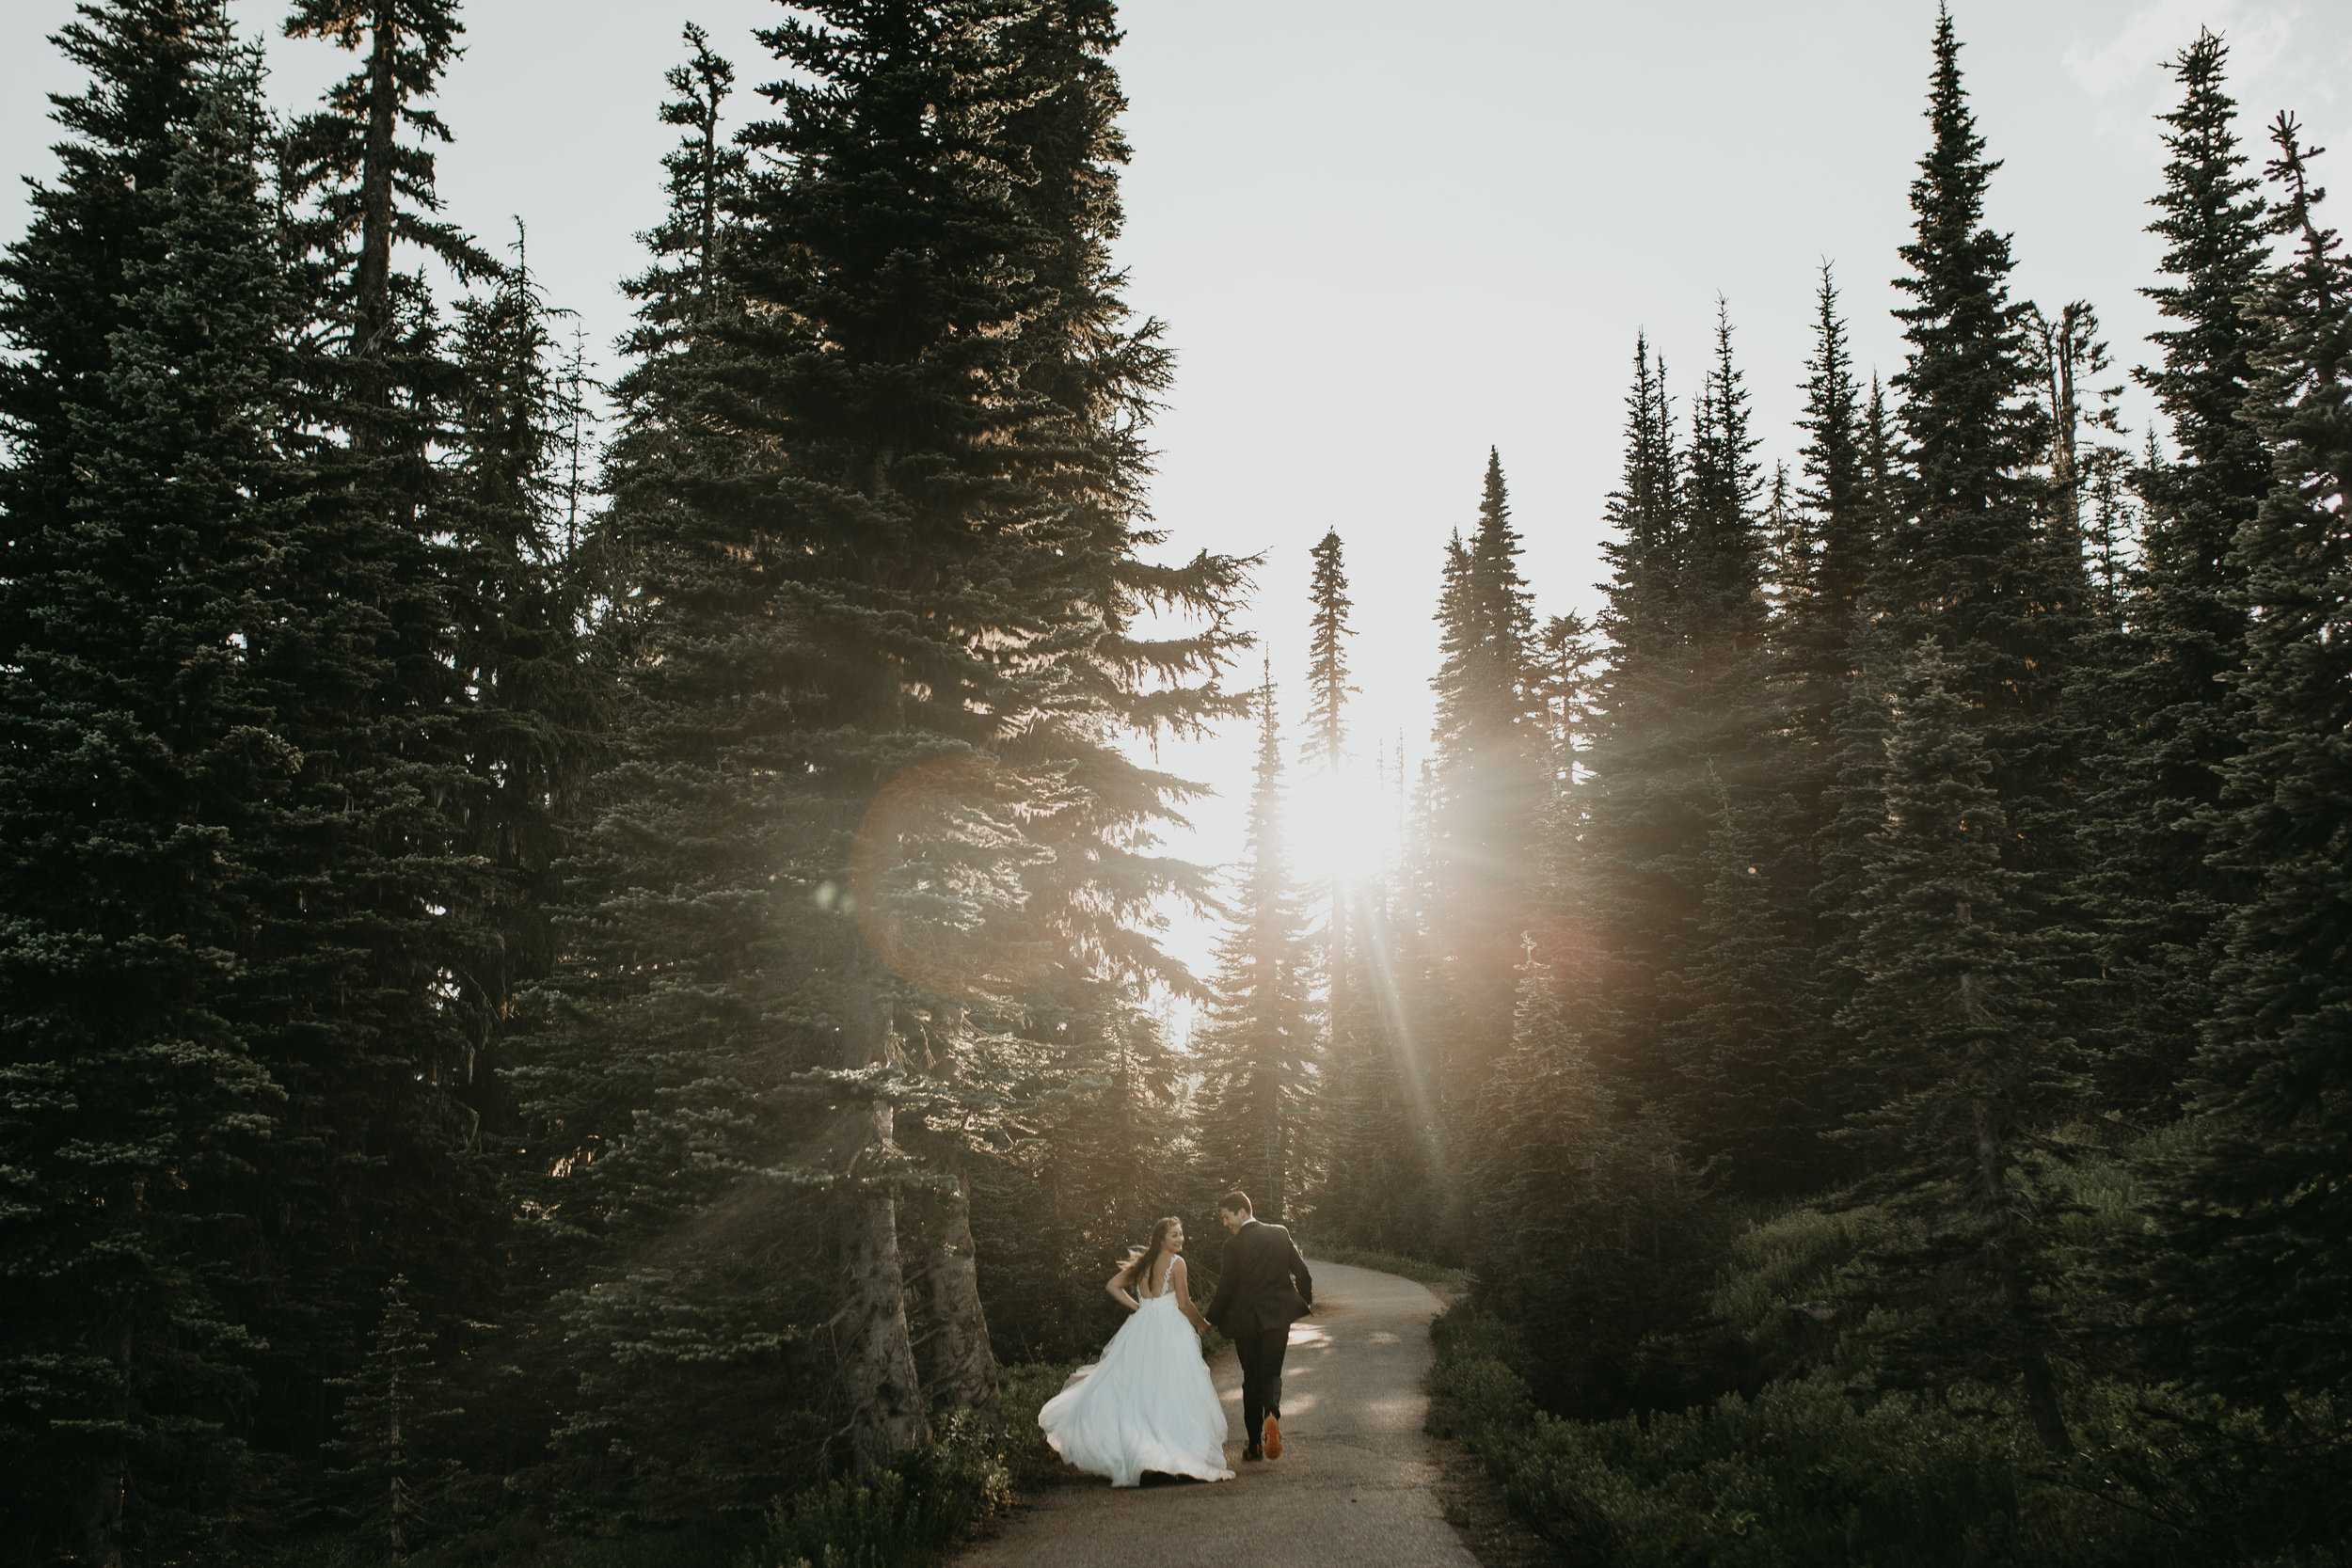 nicole-daacke-photography-adventurous-elopement-traveling-destination-wedding-photographer-national-park-engagement-sessions-7135.jpg